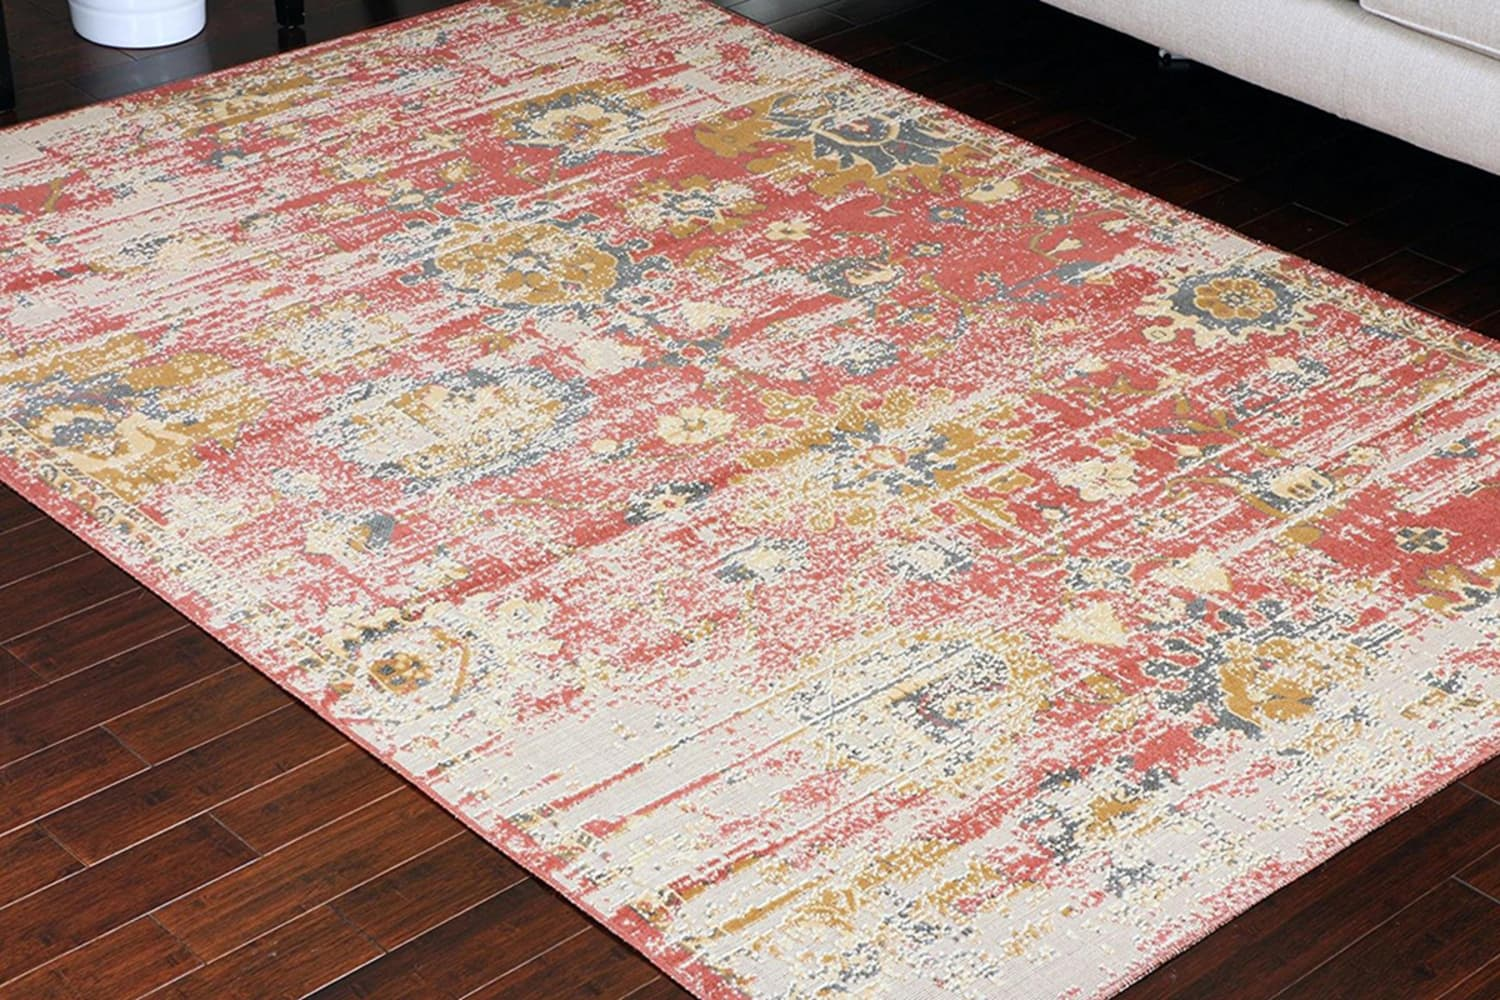 5 Stylish 8x10 Rugs From Amazon Under 100 Apartment Therapy